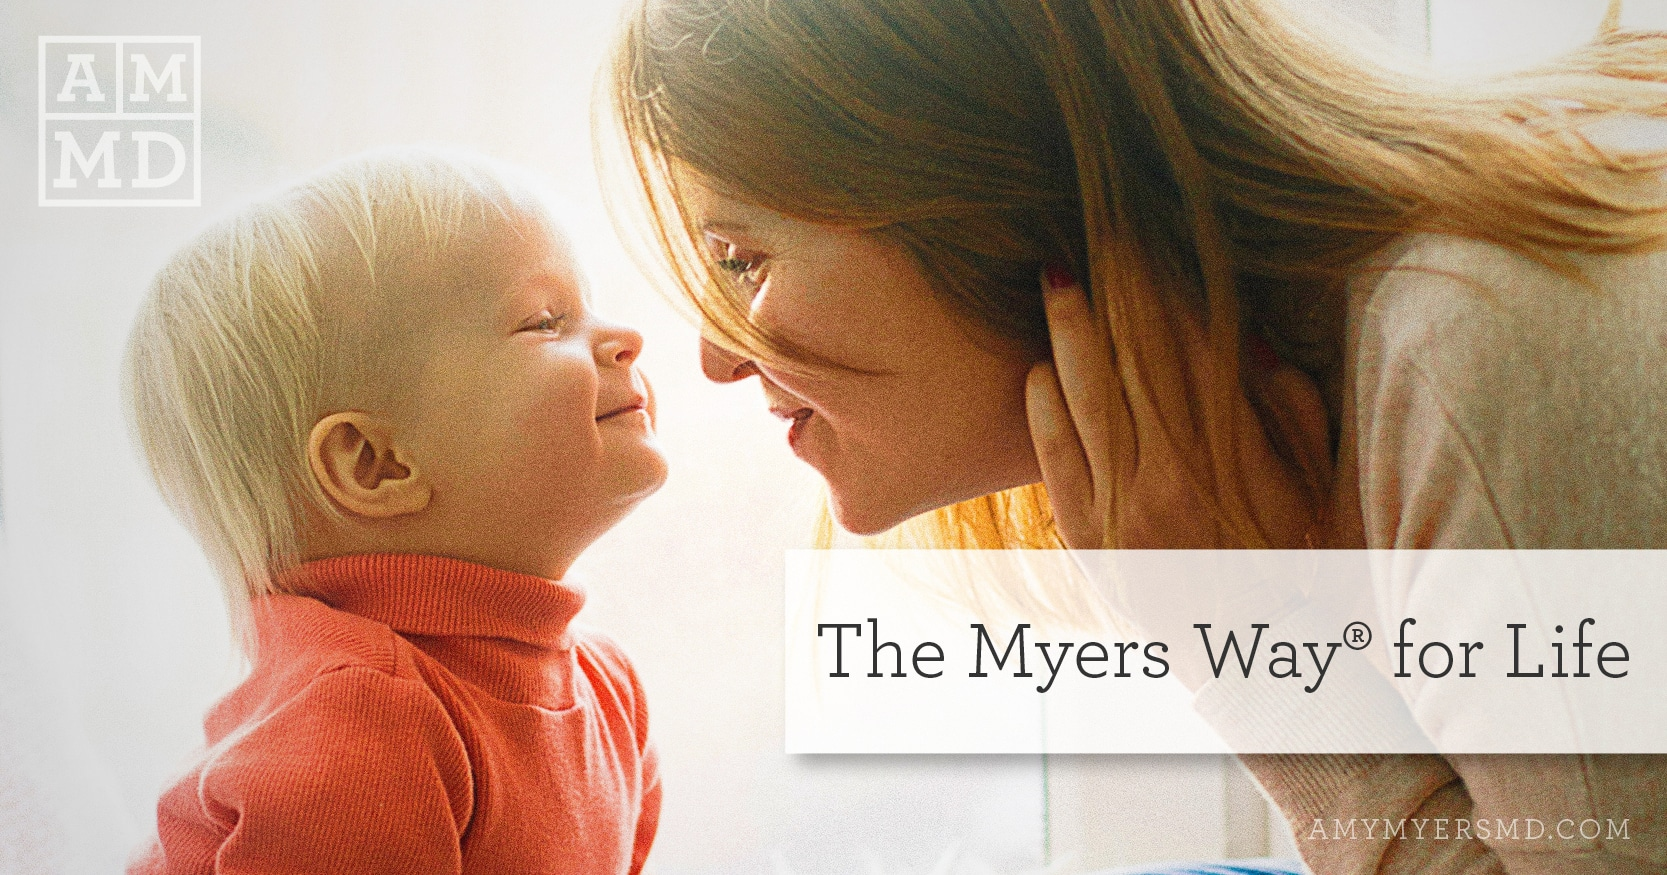 The Myers Way® for Life - A Woman and Her Toddler - Featured Image - Amy Myers MD